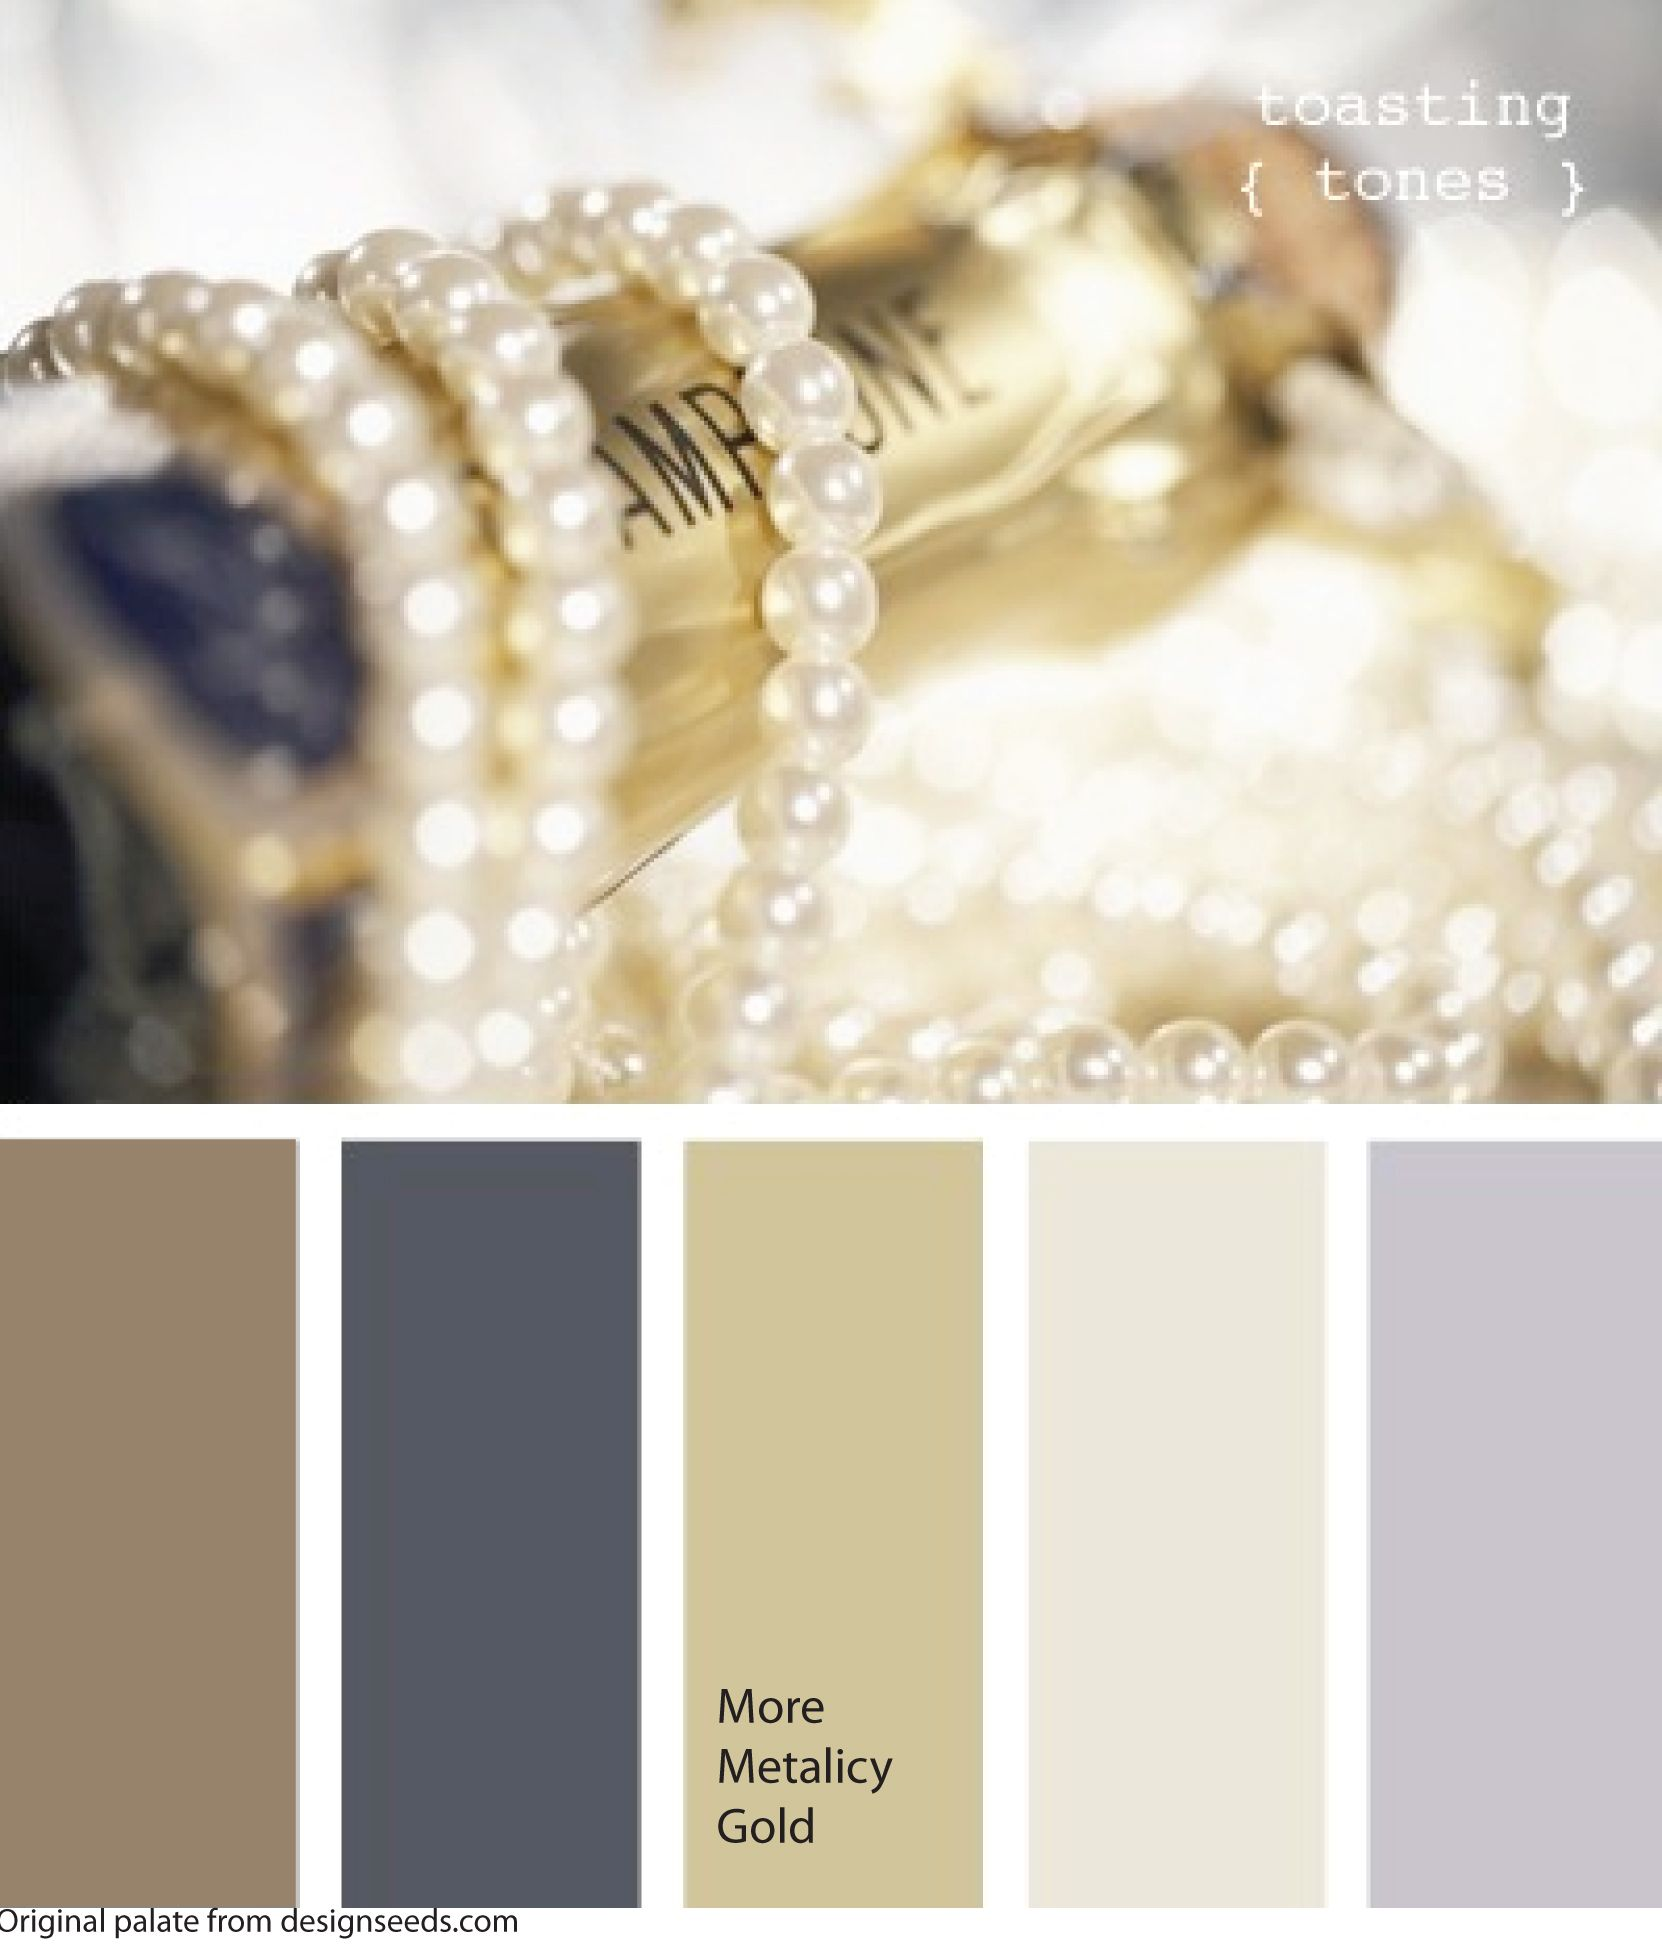 i like the champagne & pearls image for inspiration. similar to the ...